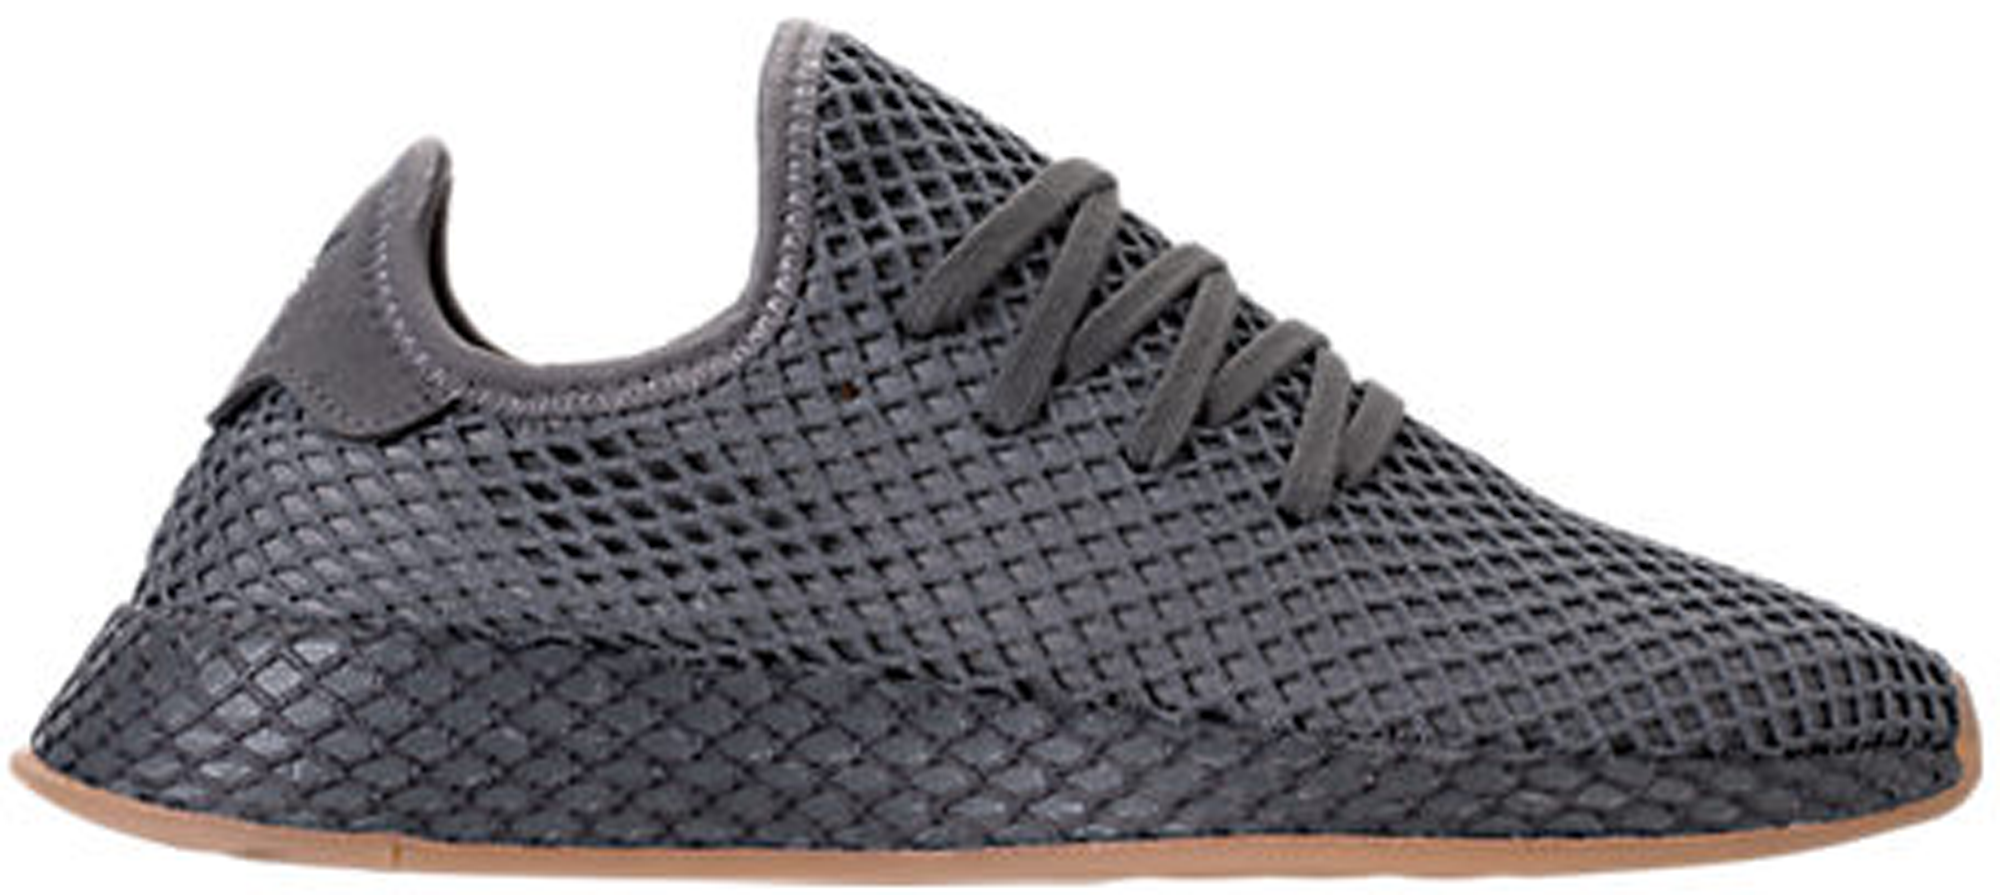 adidas Deerupt Muted Neons Grey Four